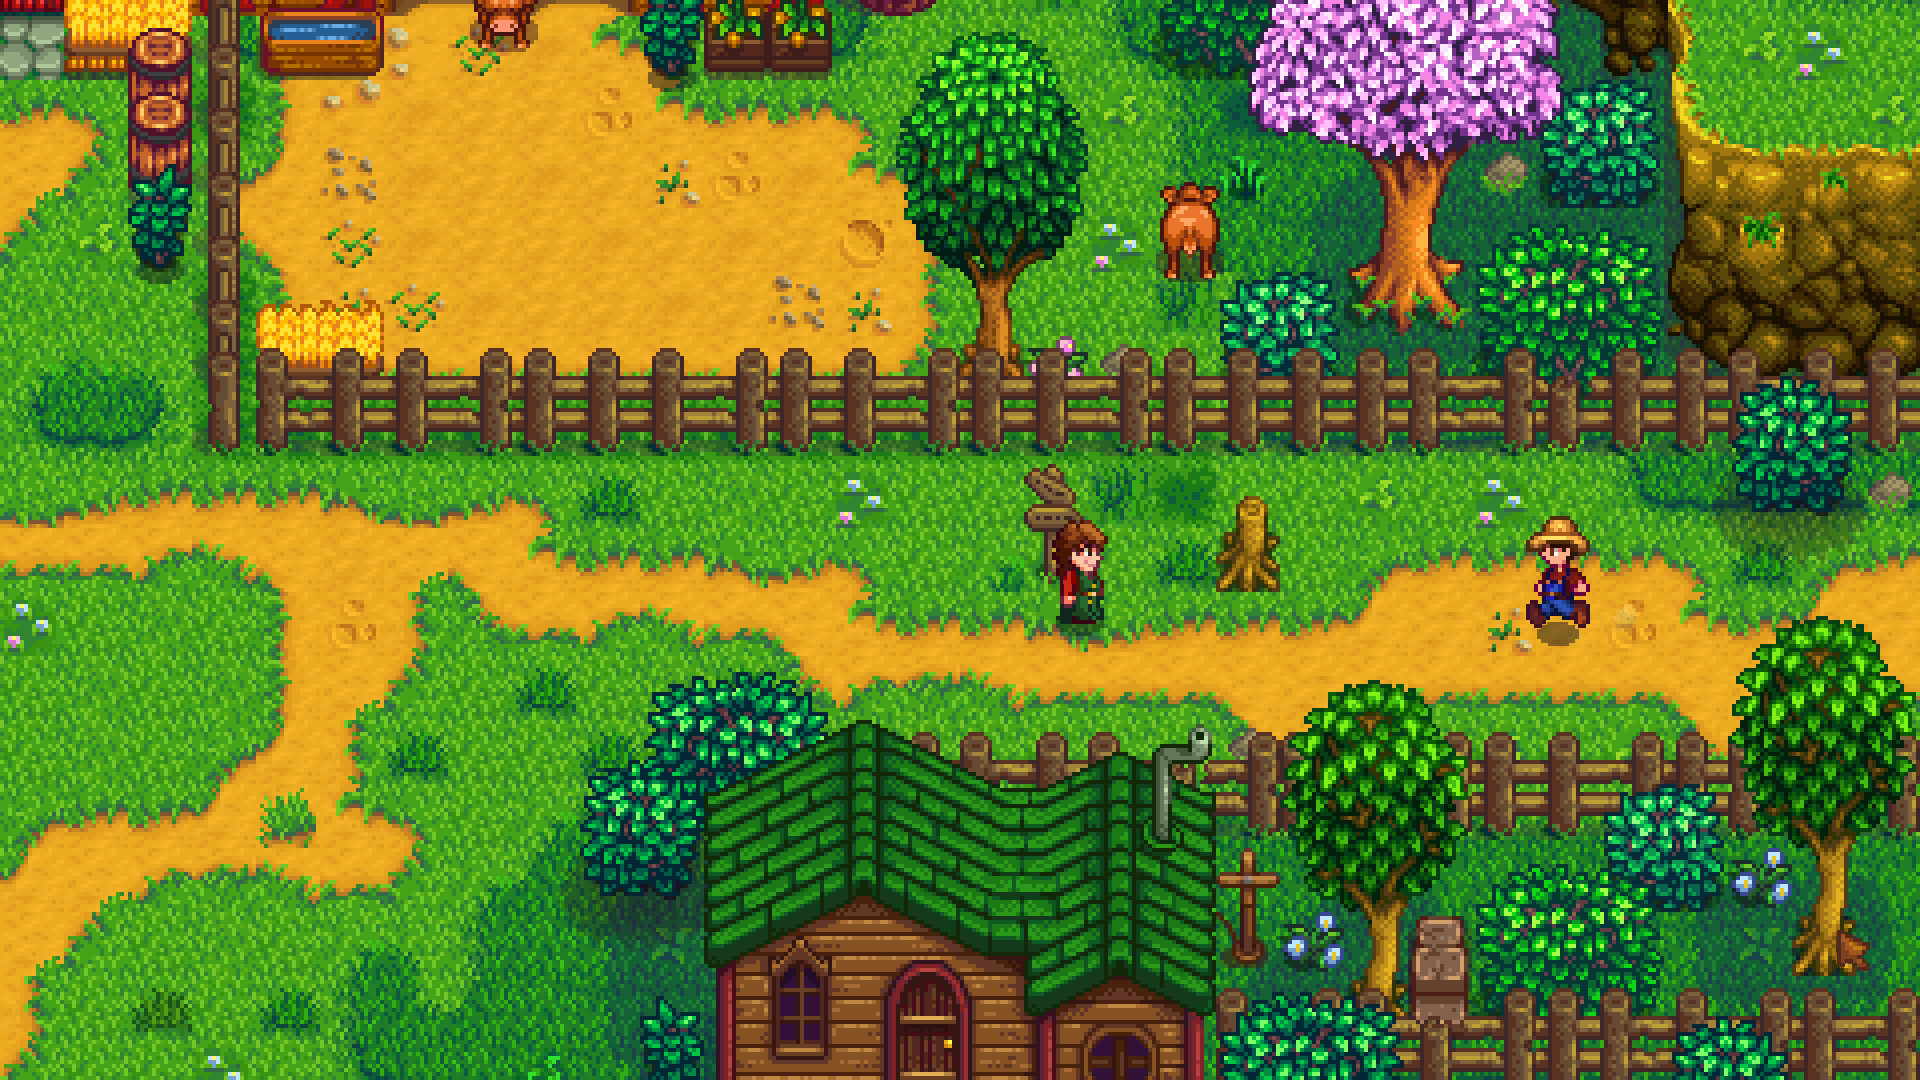 Stardew-Valley-screenshot